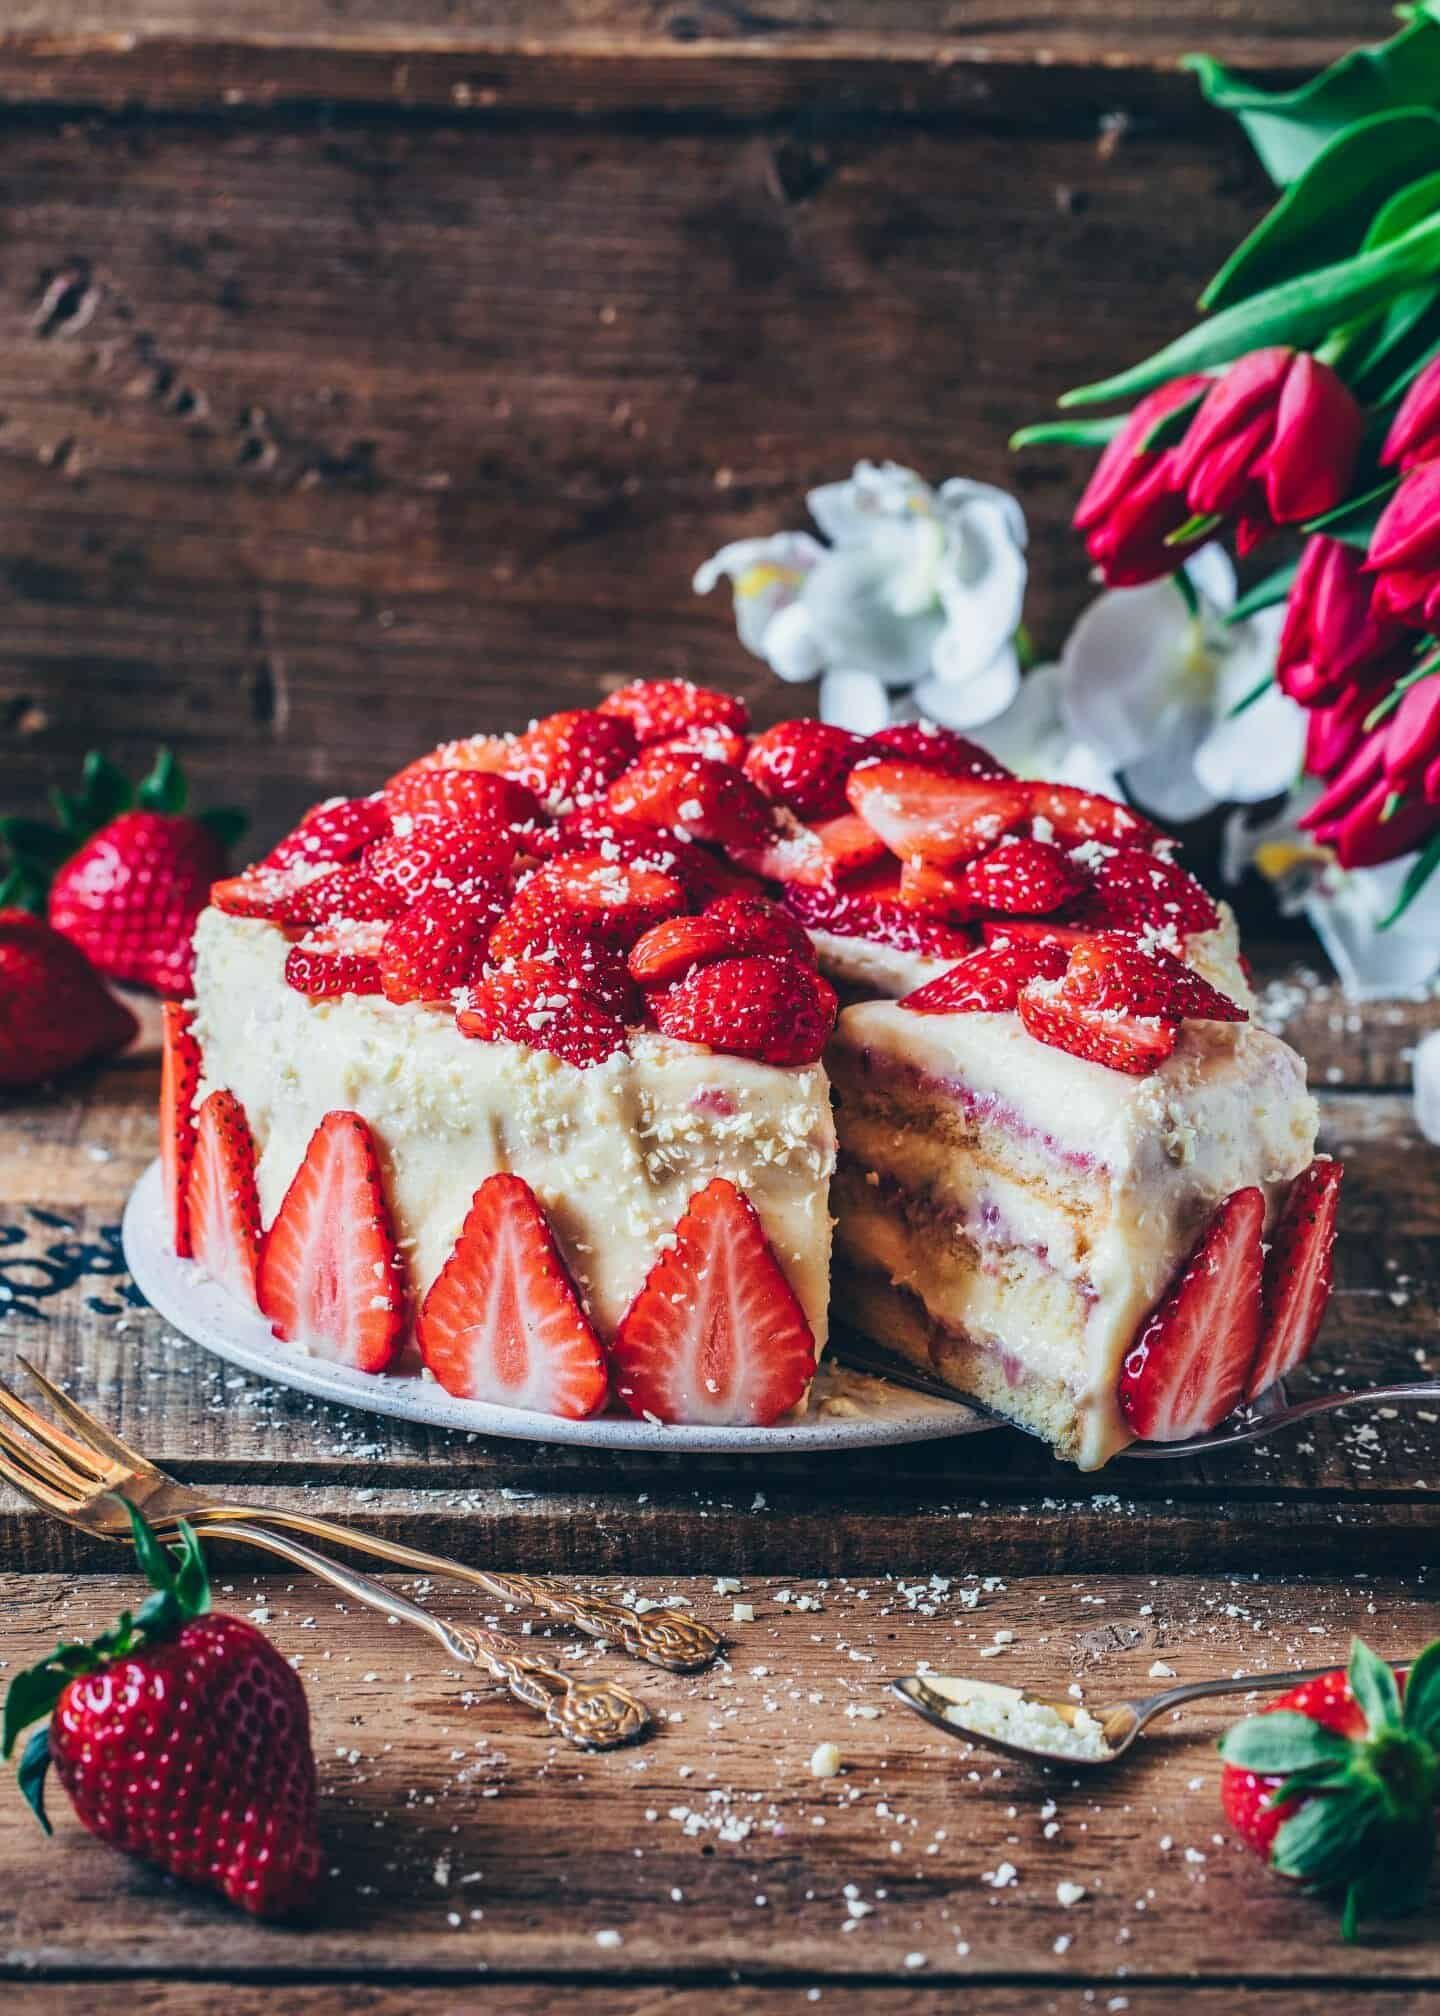 Strawberry cream cake recipe. Vegan strawberry cake. Fluffy, creamy, delicious, dairy-free. Dessert.